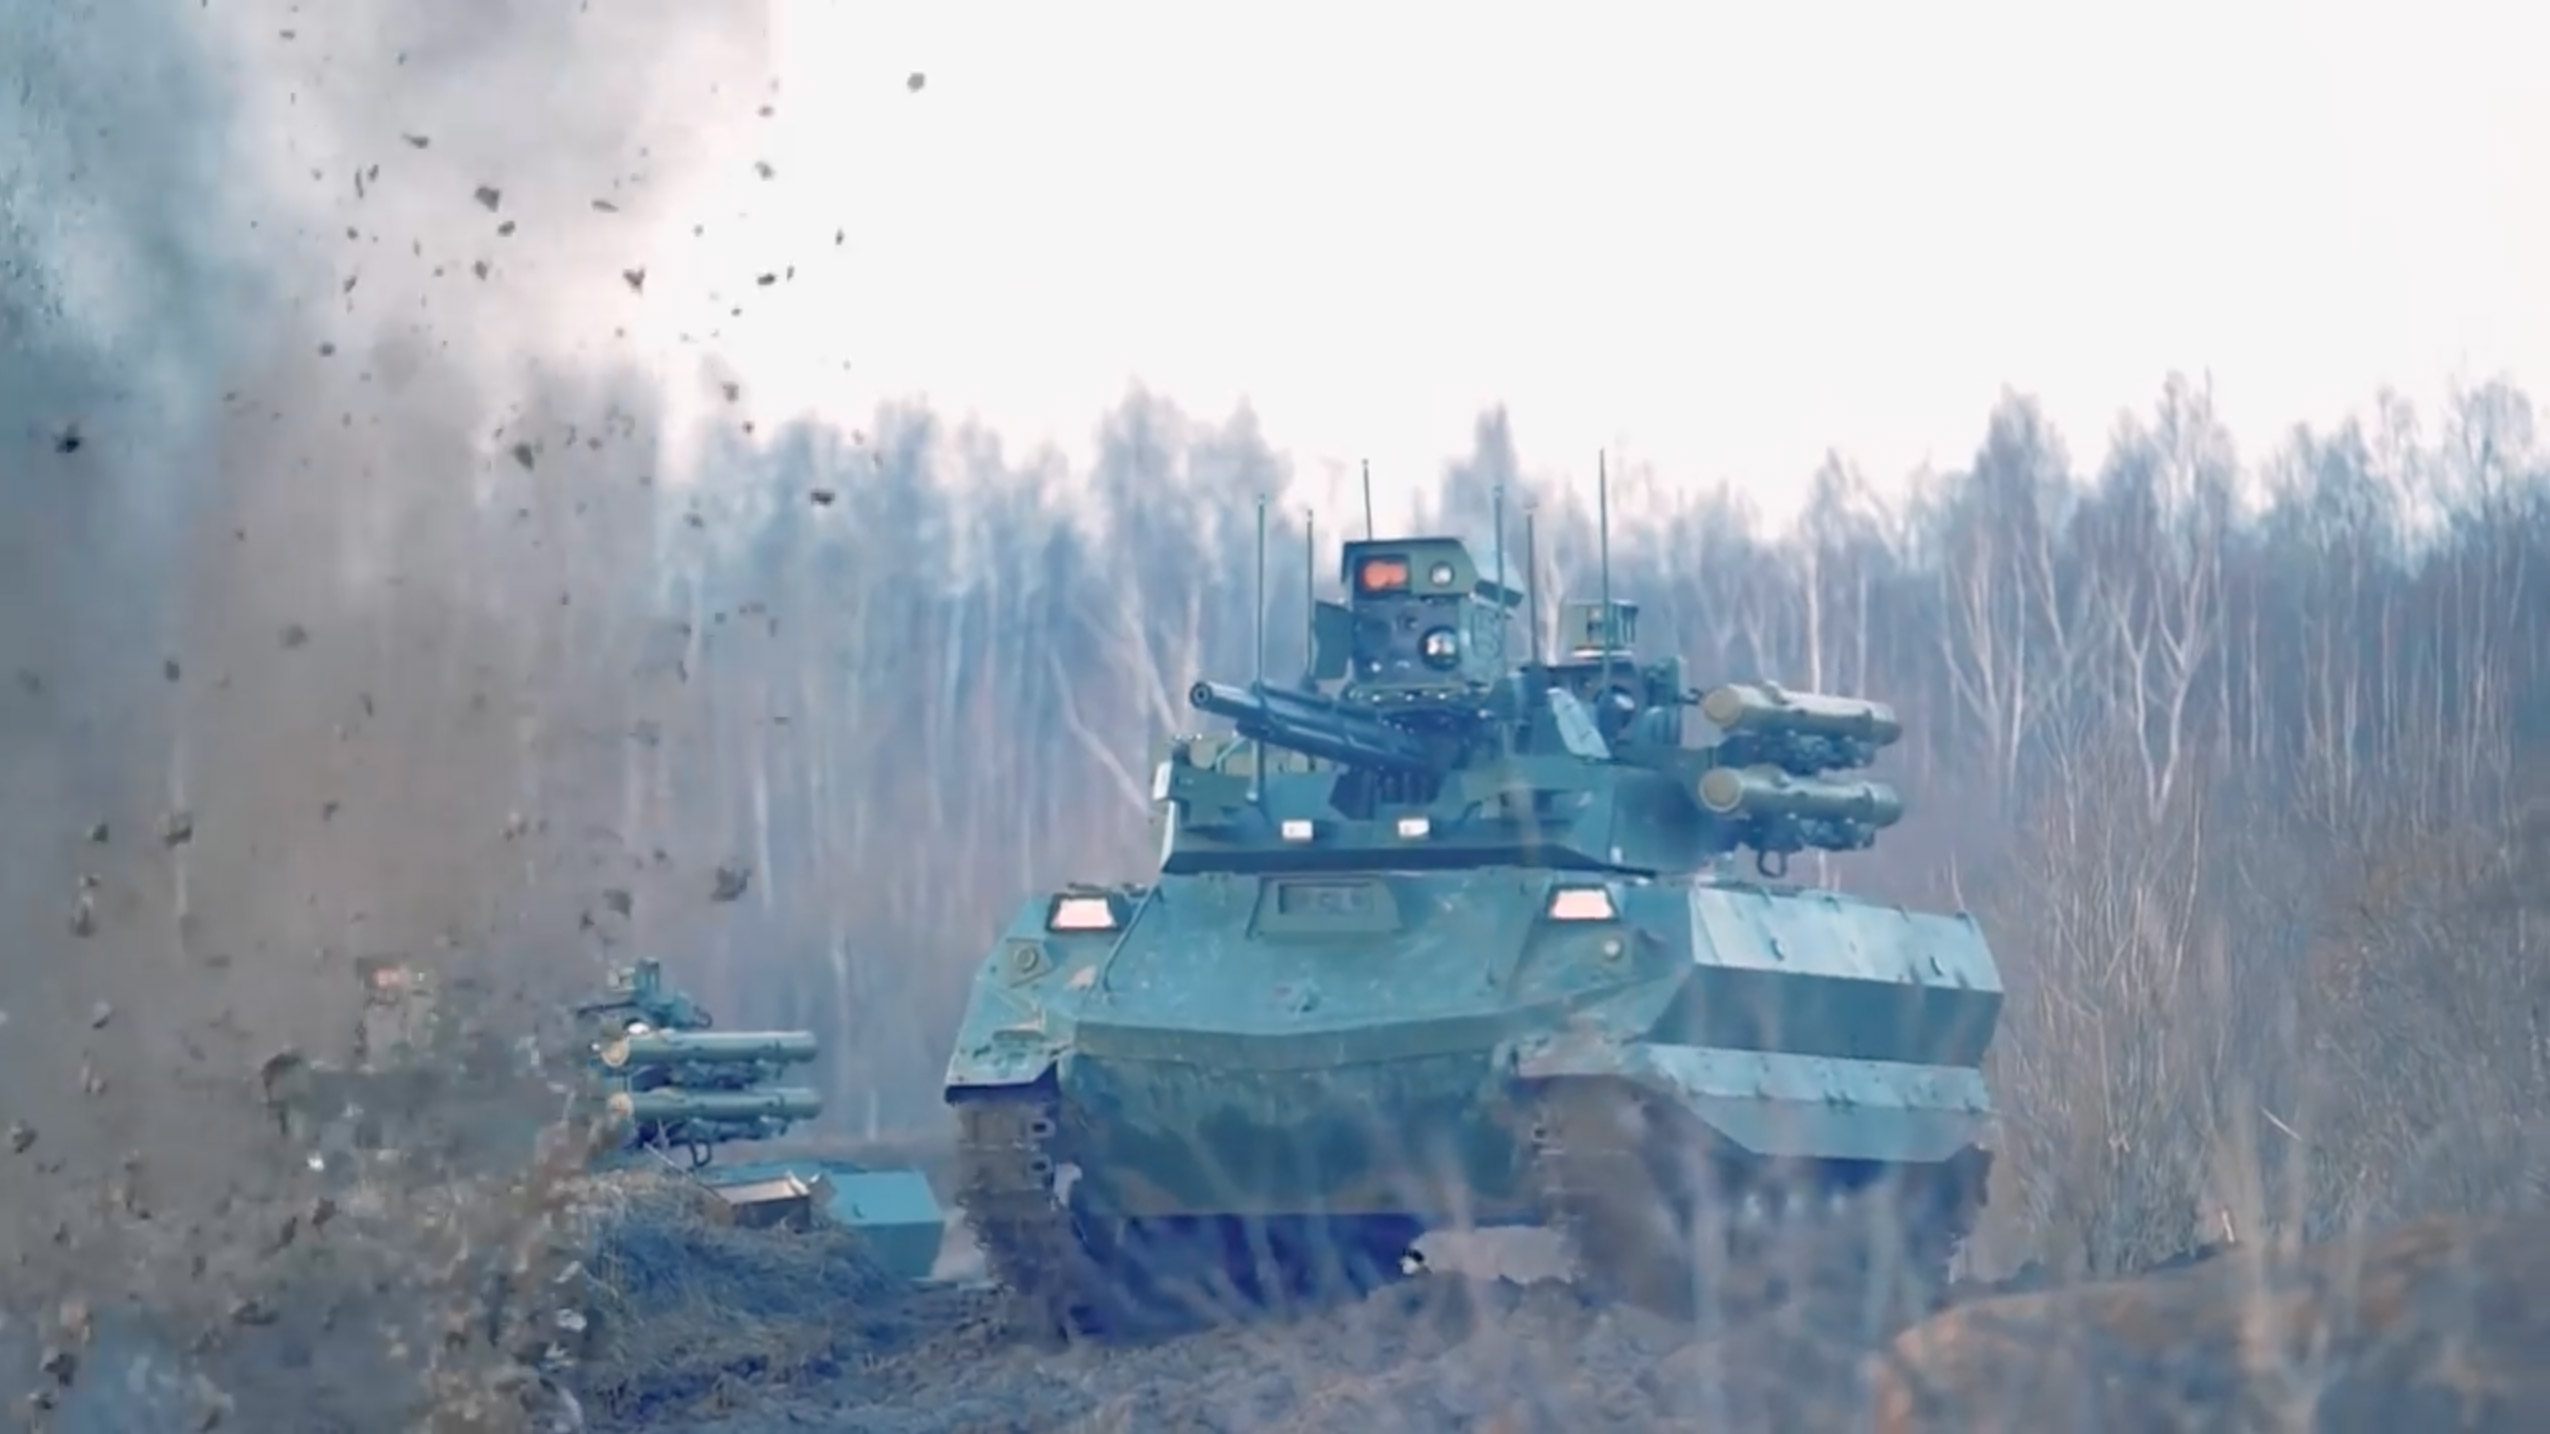 Robotic vehicles: Russia's quest for the weapons of future wars